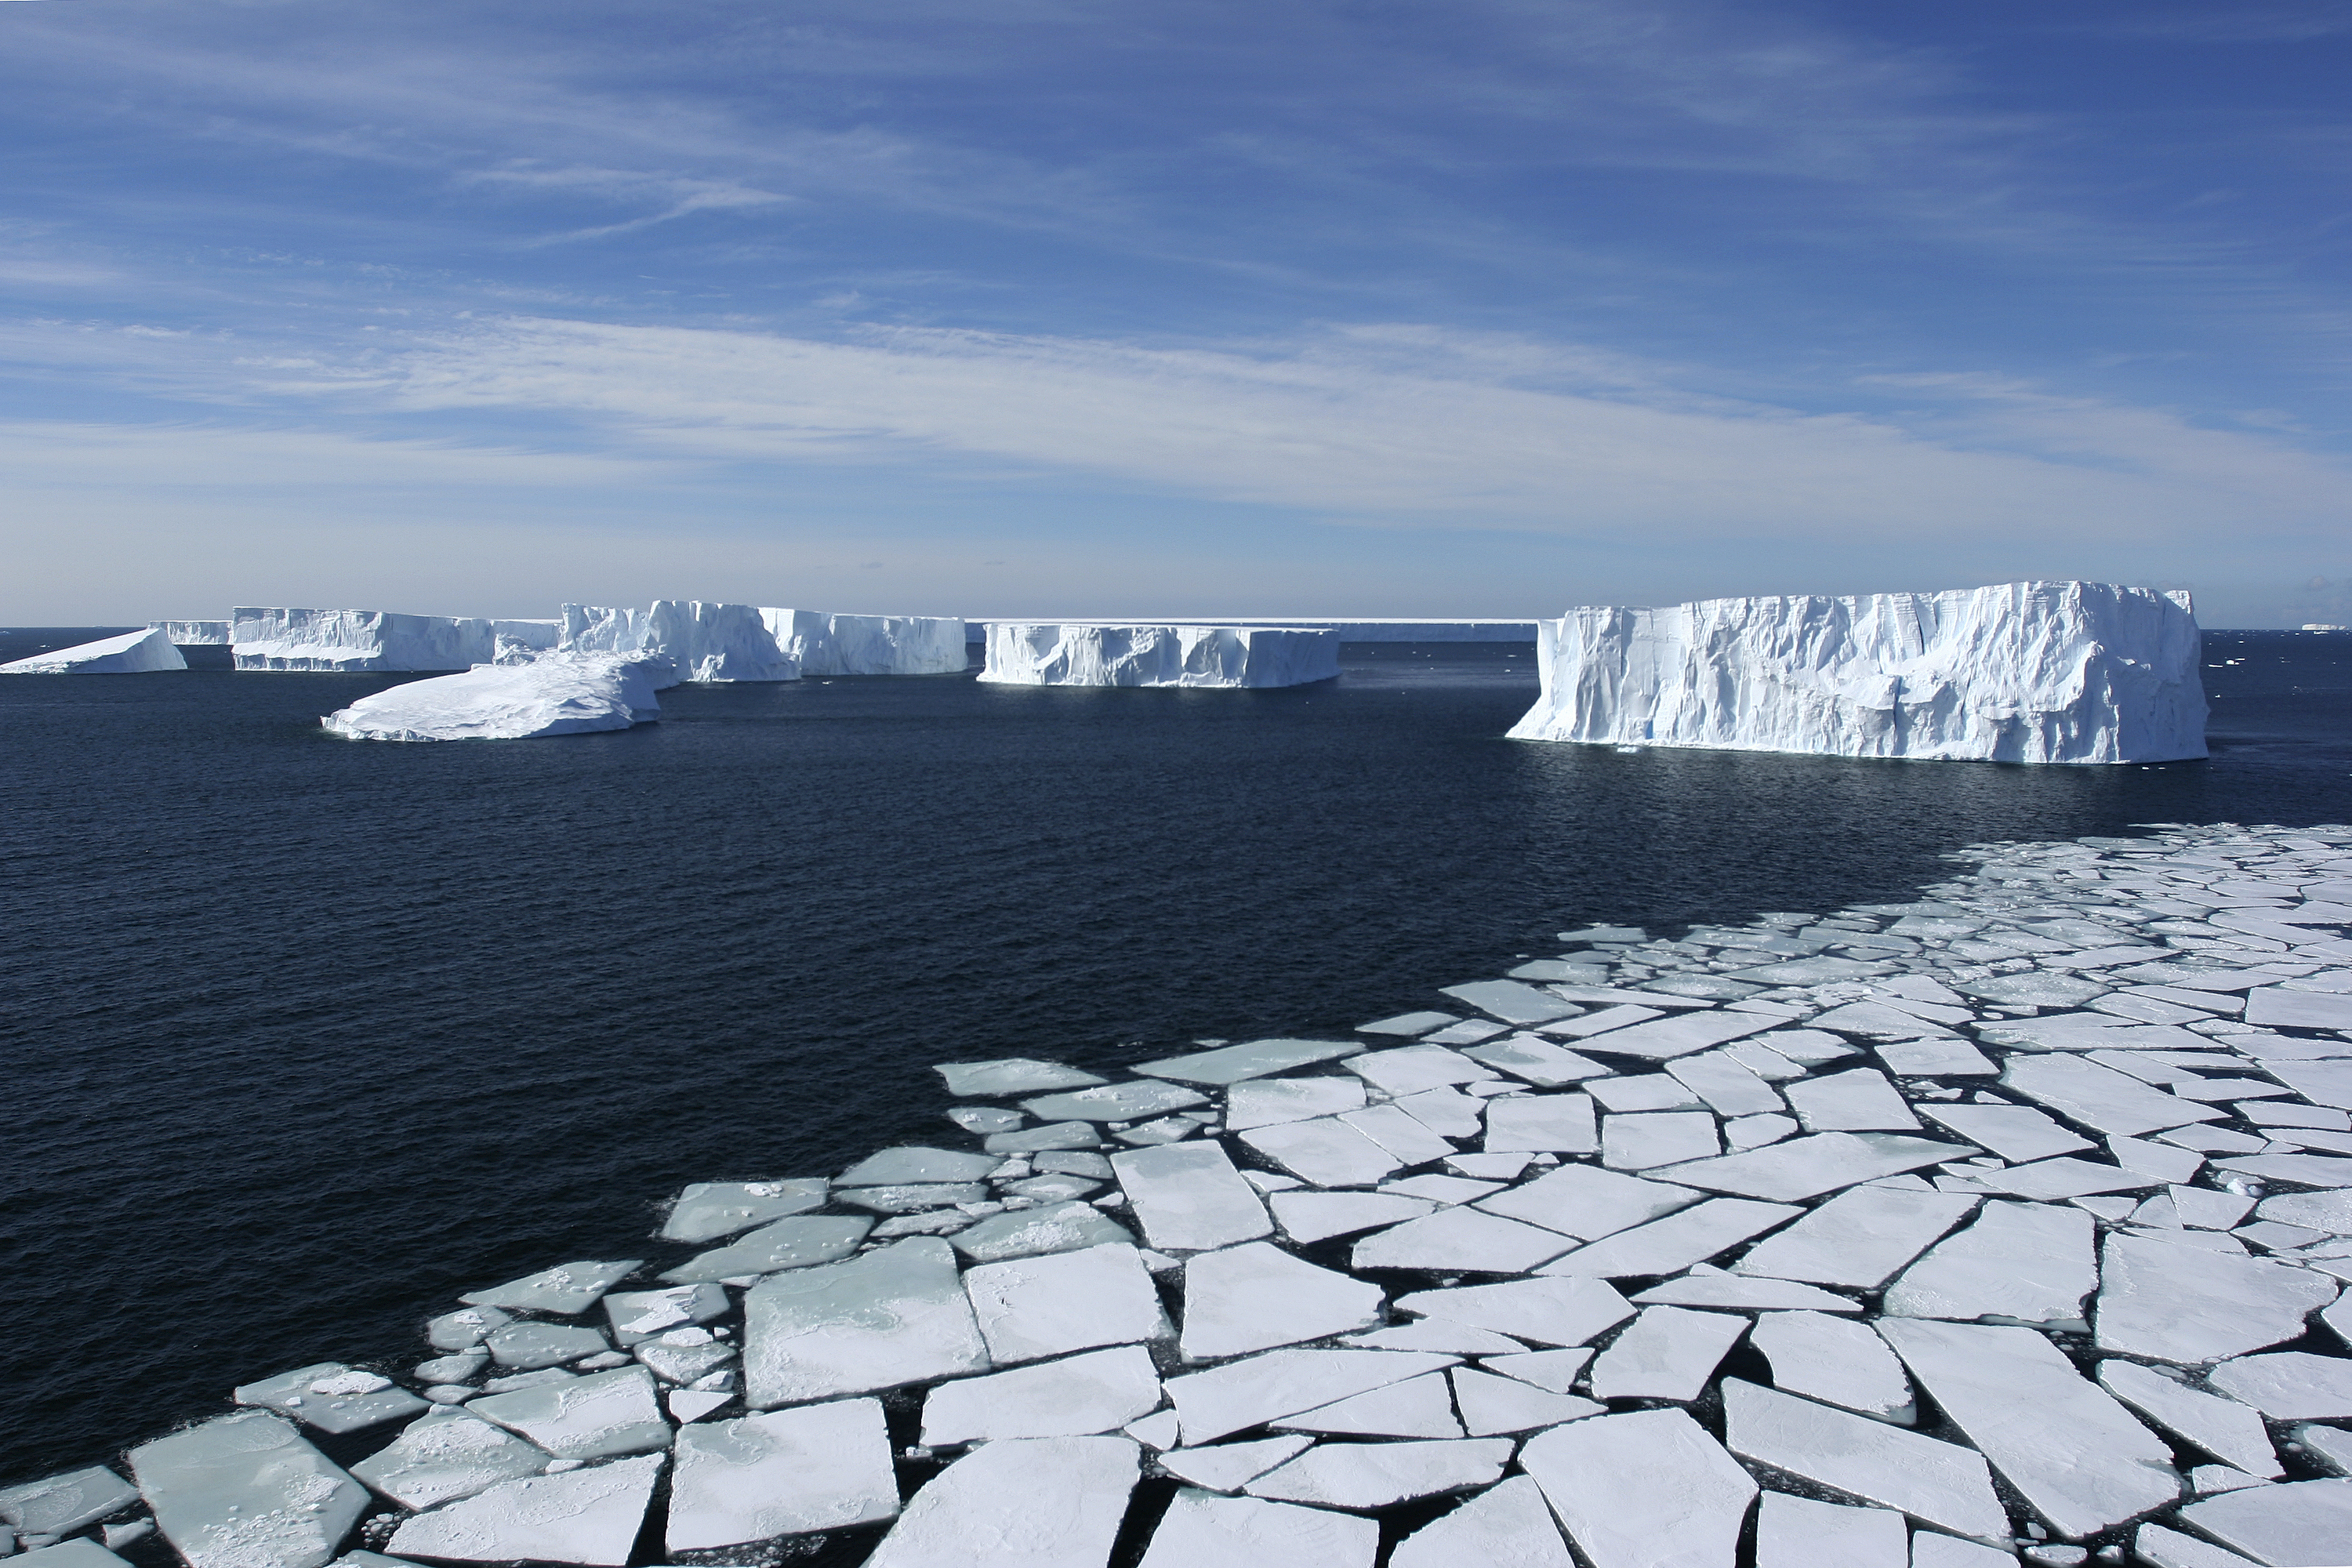 Ross Sea, Antarctica - Aerial View with Pack Ice and Icebergs, Eco Tourism